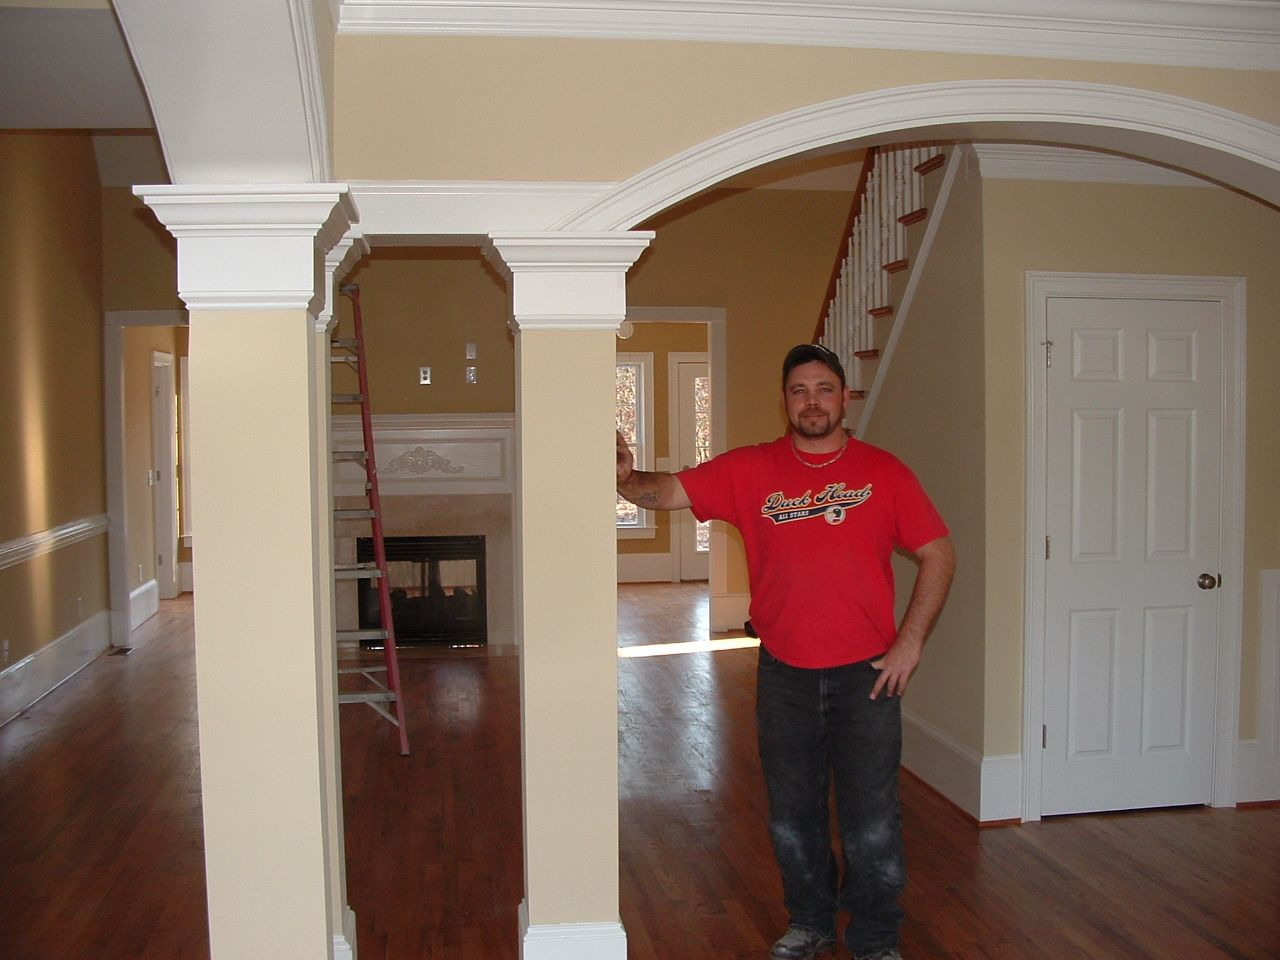 Arched interior doorways with wood pillars google search for Decorative archway mouldings